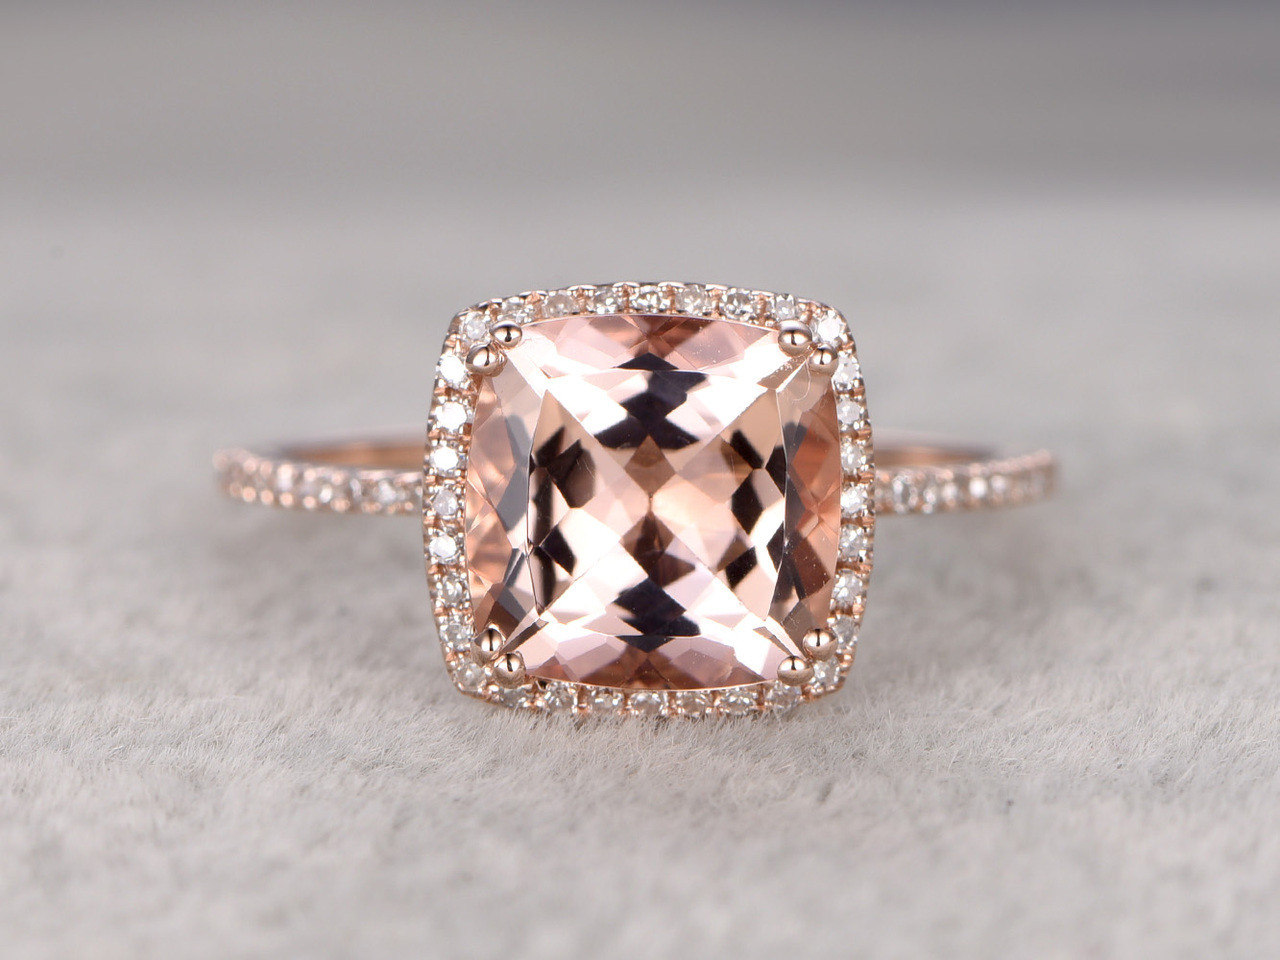 9mm Big Cushion 3 carat Morganite Engagement Ring Diamond Wedding